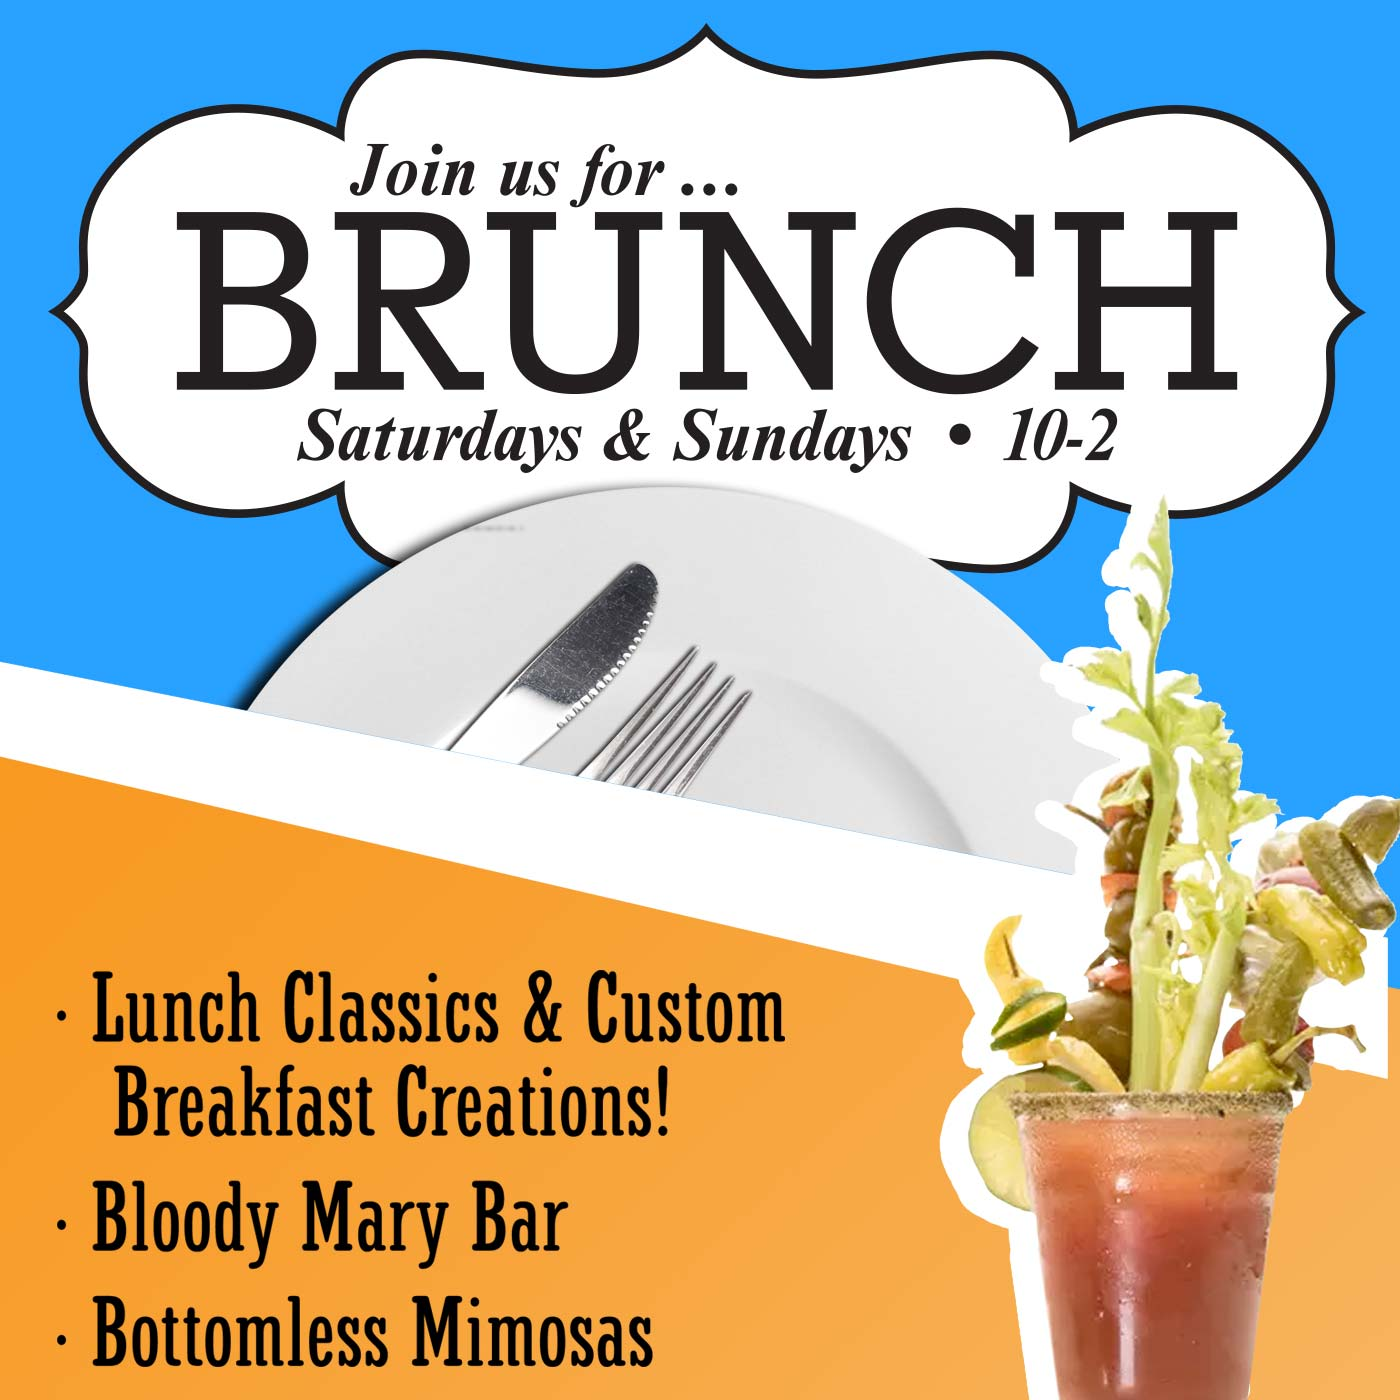 Join us for Brunch Saturdays and Sundays 10-2. Lunch Classics and Custom Breakfast creations. Bloody Mary Bar. Bottomless Mimosas.